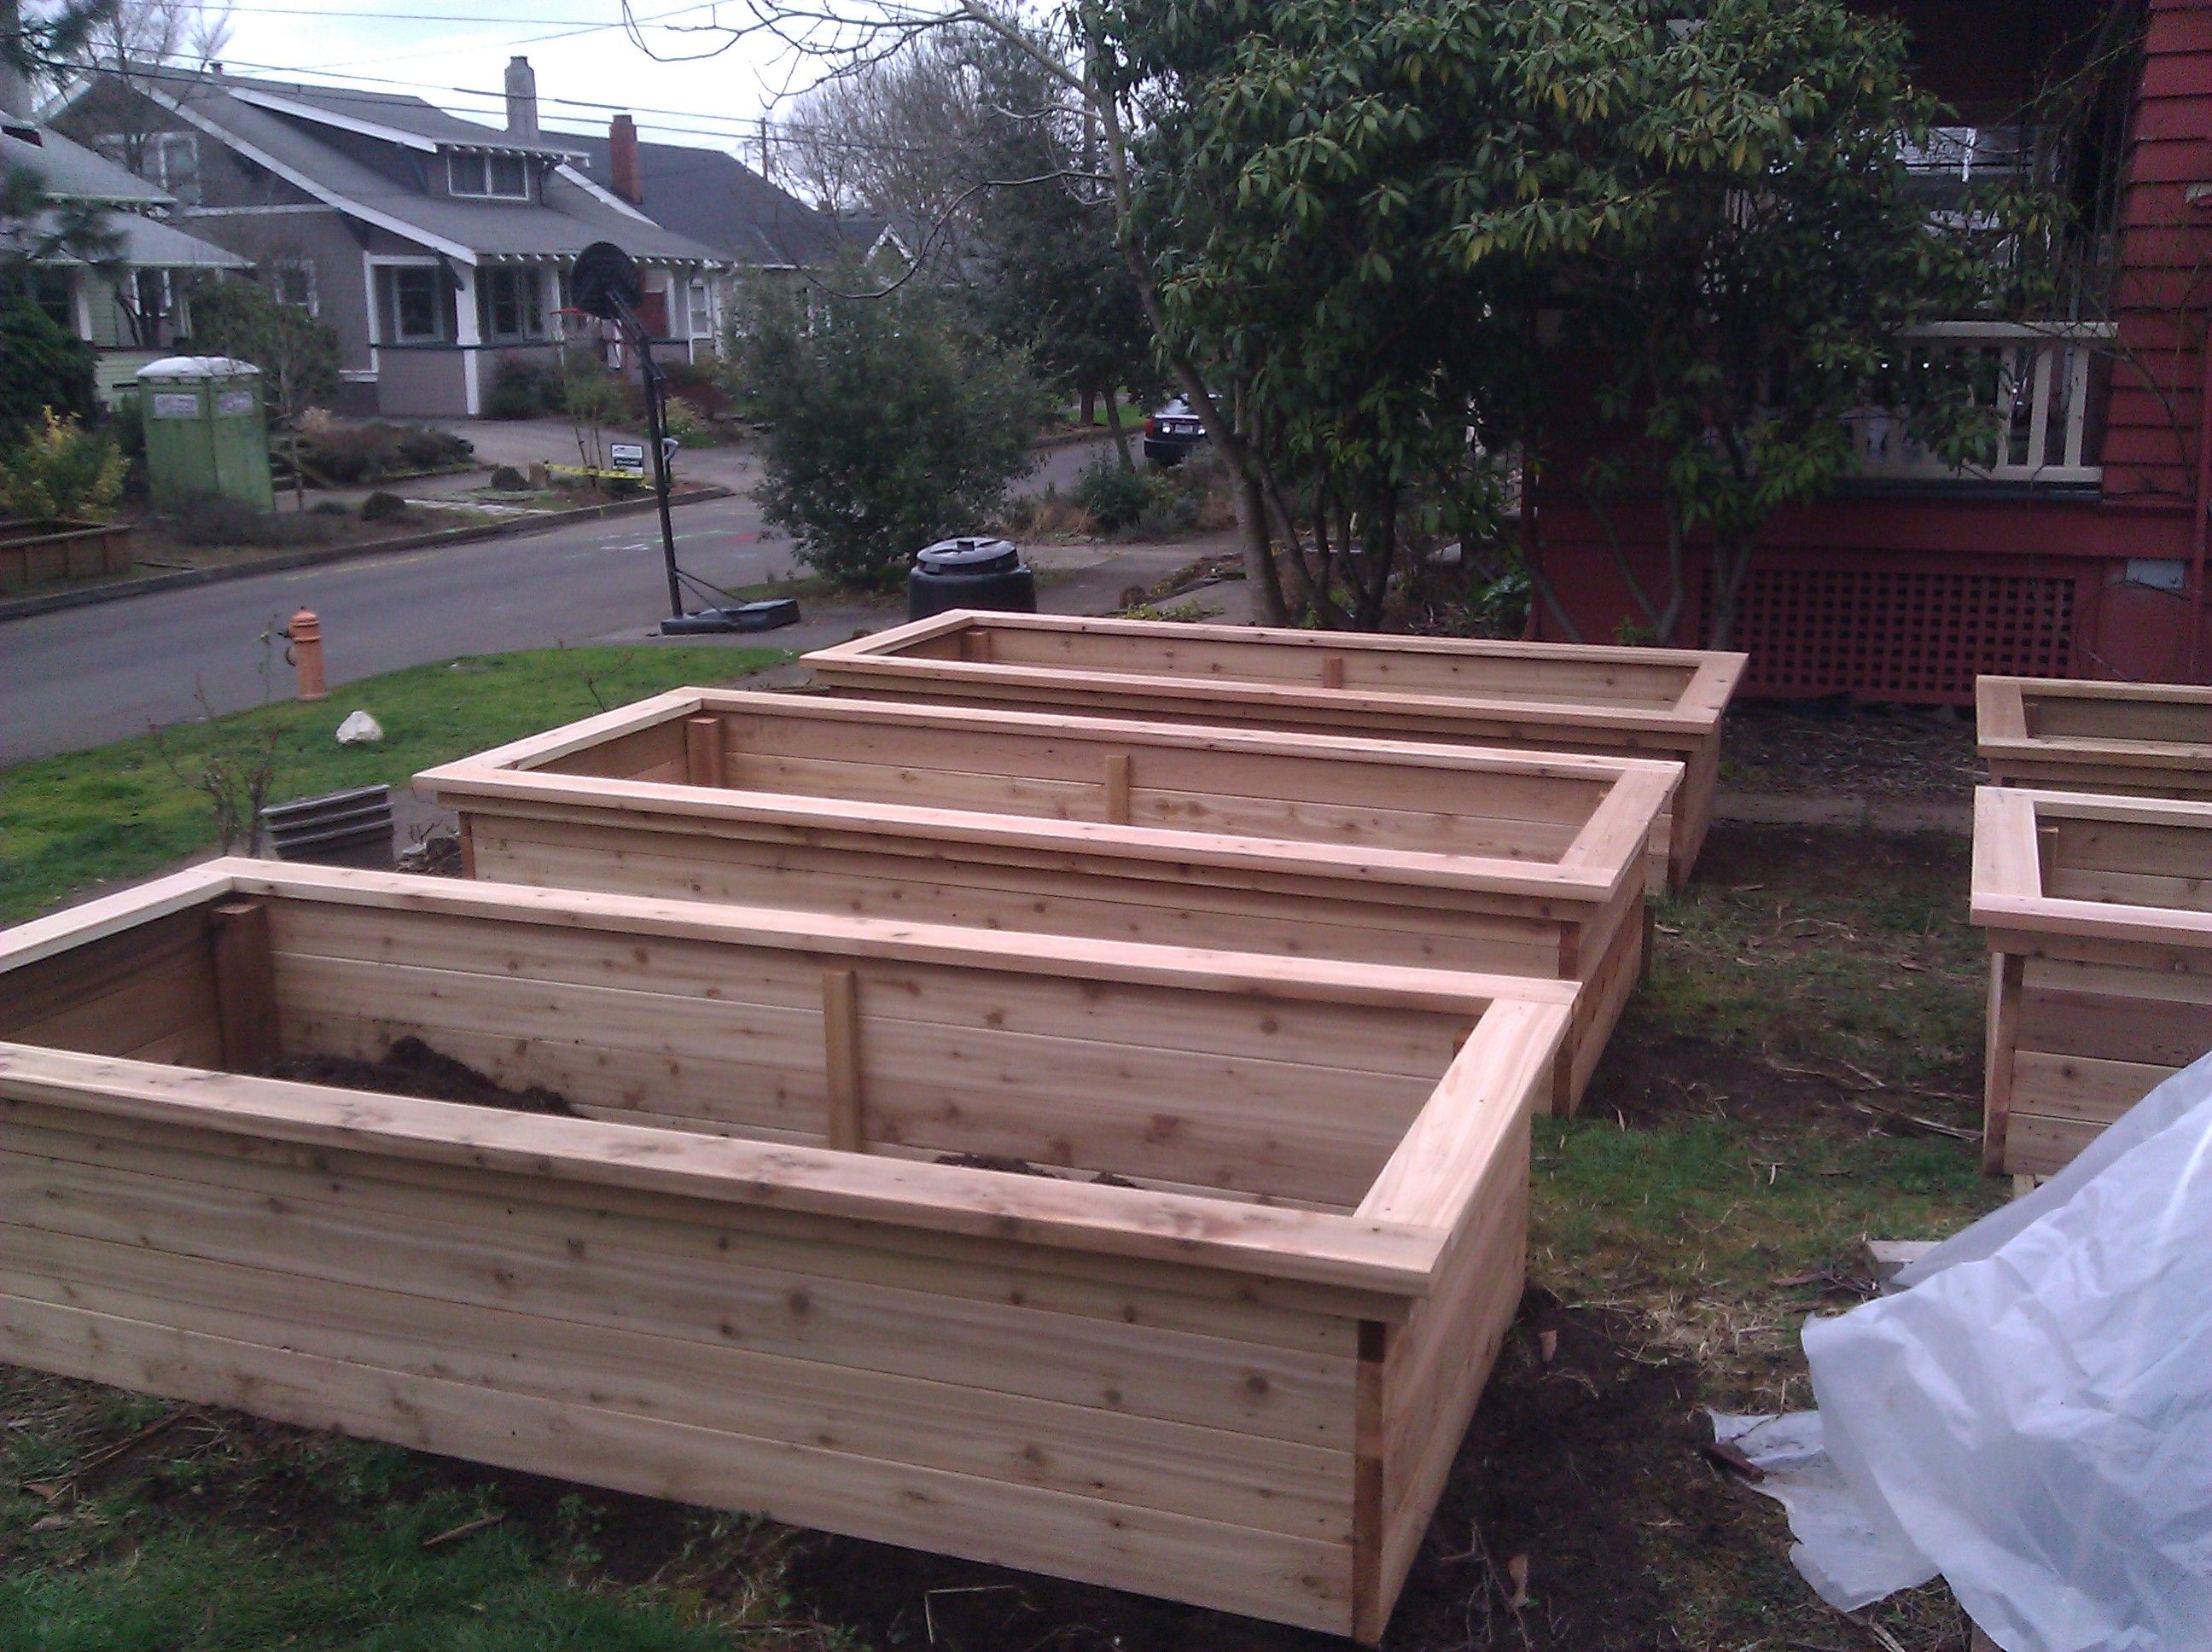 Best wood for raised garden beds 25 diy raised garden beds for Making raised garden beds